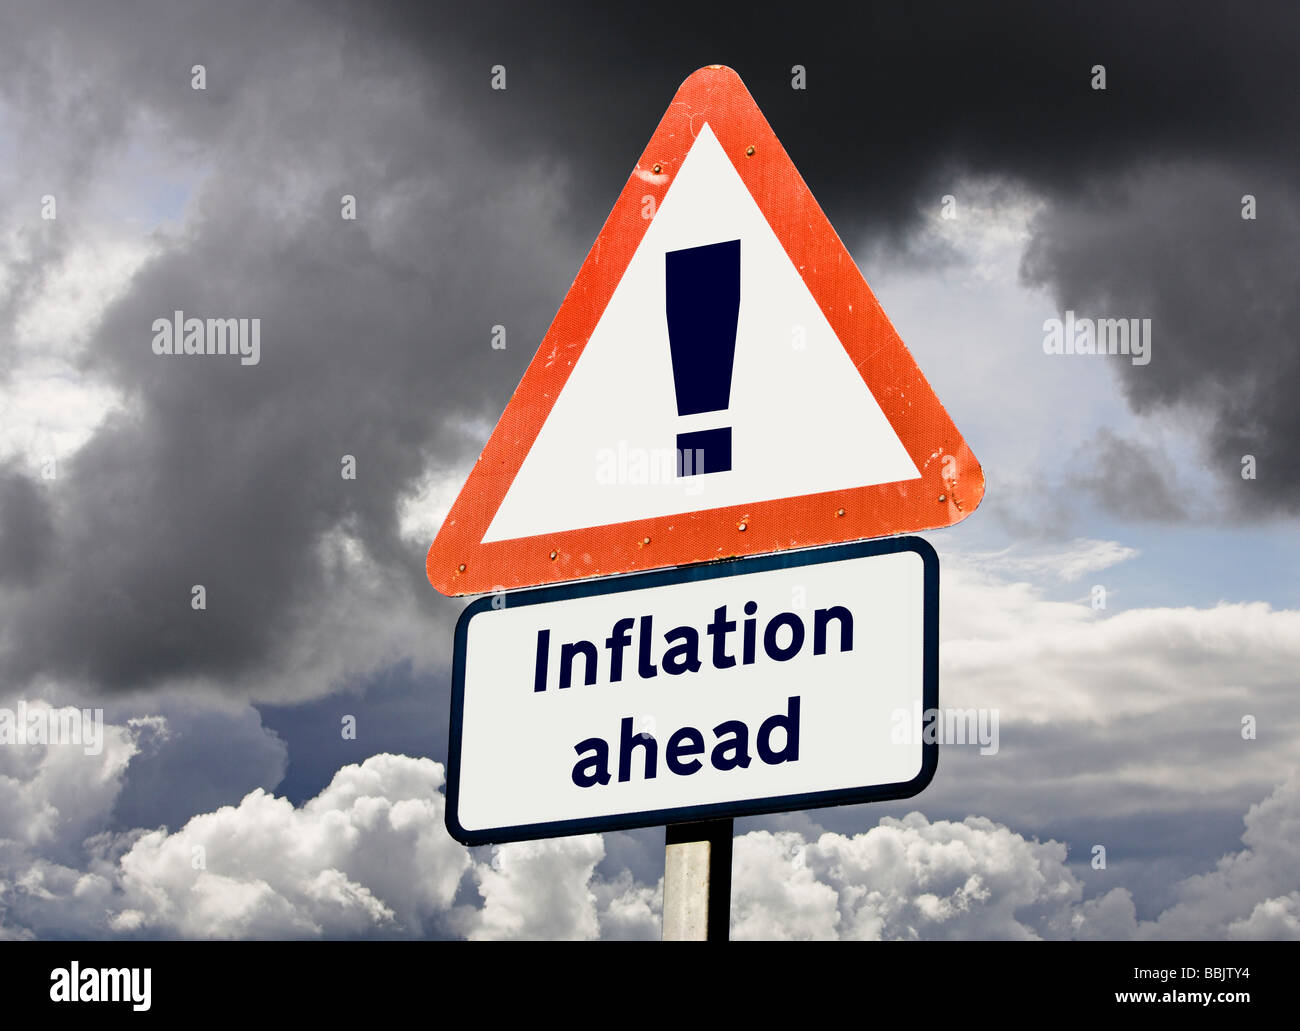 Sign concept showing Inflation Rising Ahead - future prediction, economy, economics concepts, UK - Stock Image